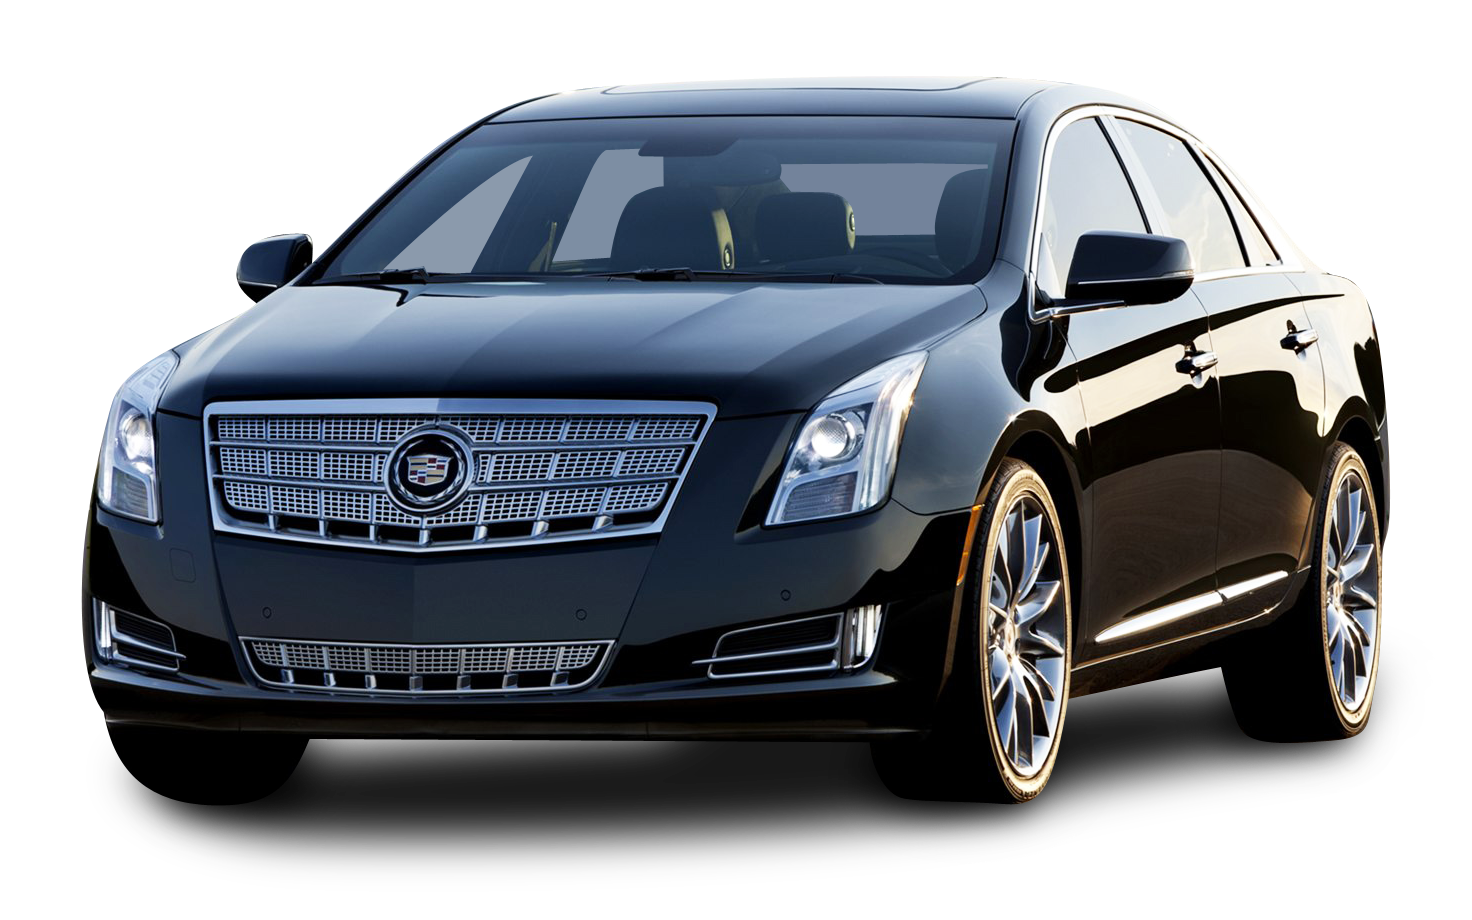 Exotic car clipart picture freeuse stock Cadillac cars PNG images free download picture freeuse stock